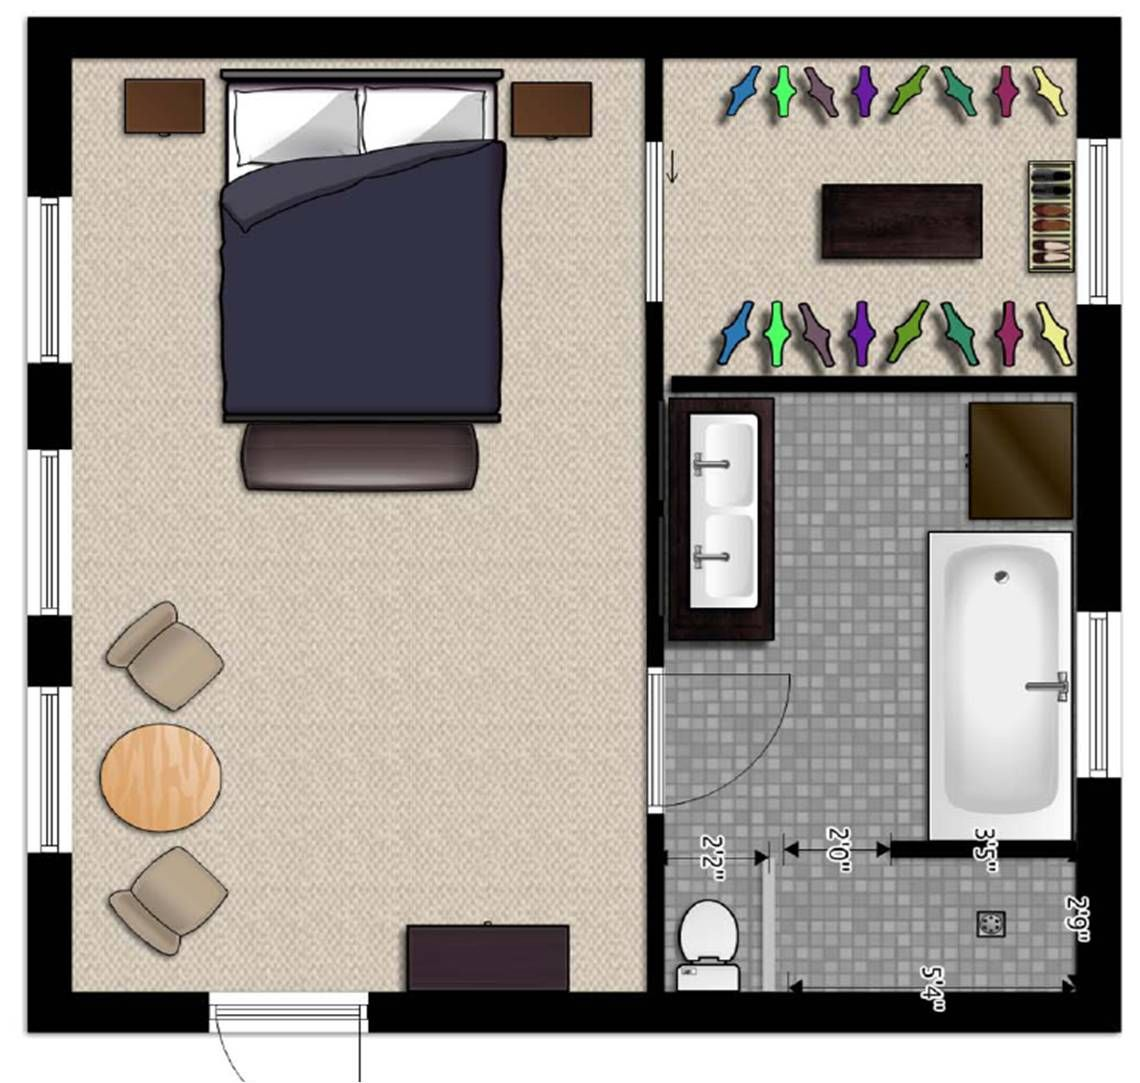 Master Suite Floor Plans In Easy Flow Design Large For Simple Plan Idea In First Floor Modern Style Suite Floor Plans Design Bedroom And Bathroom In